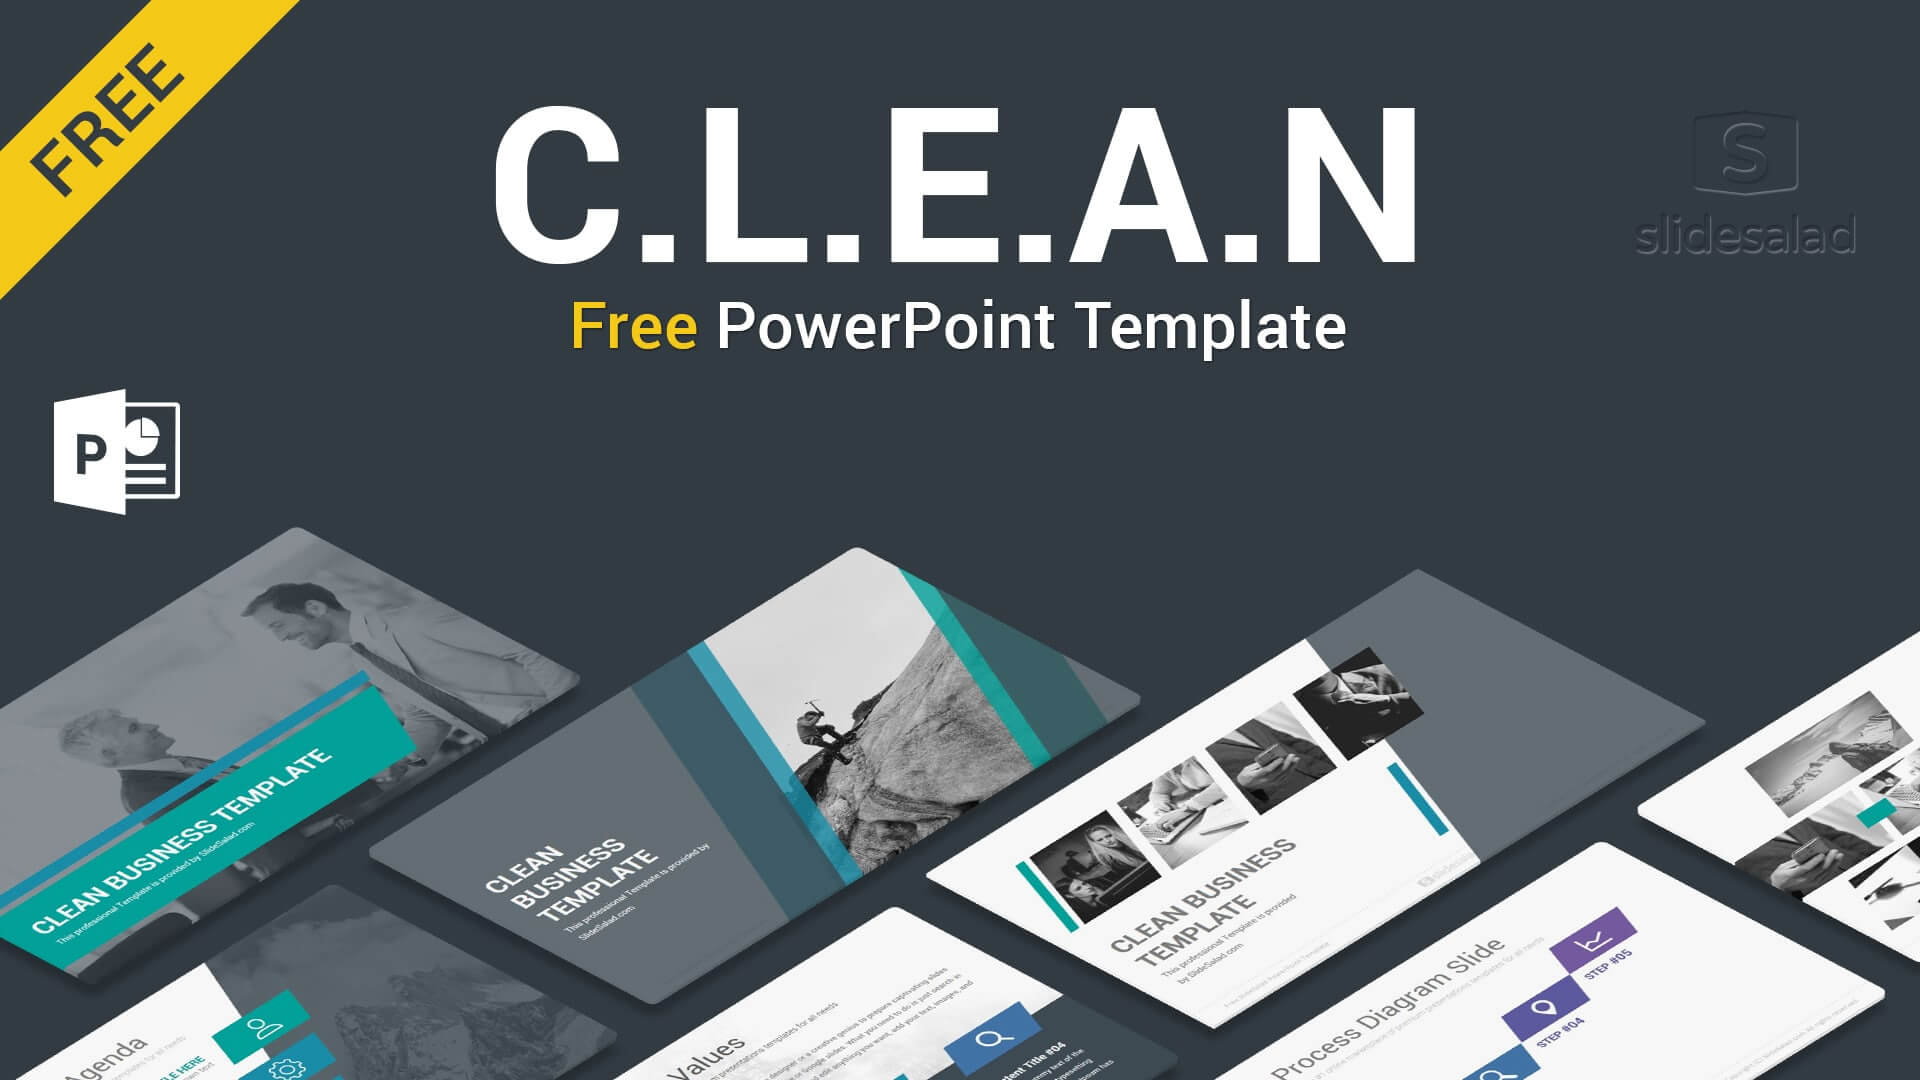 Best Free Presentation Templates Professional Designs 2019 within Virus Powerpoint Template Free Download